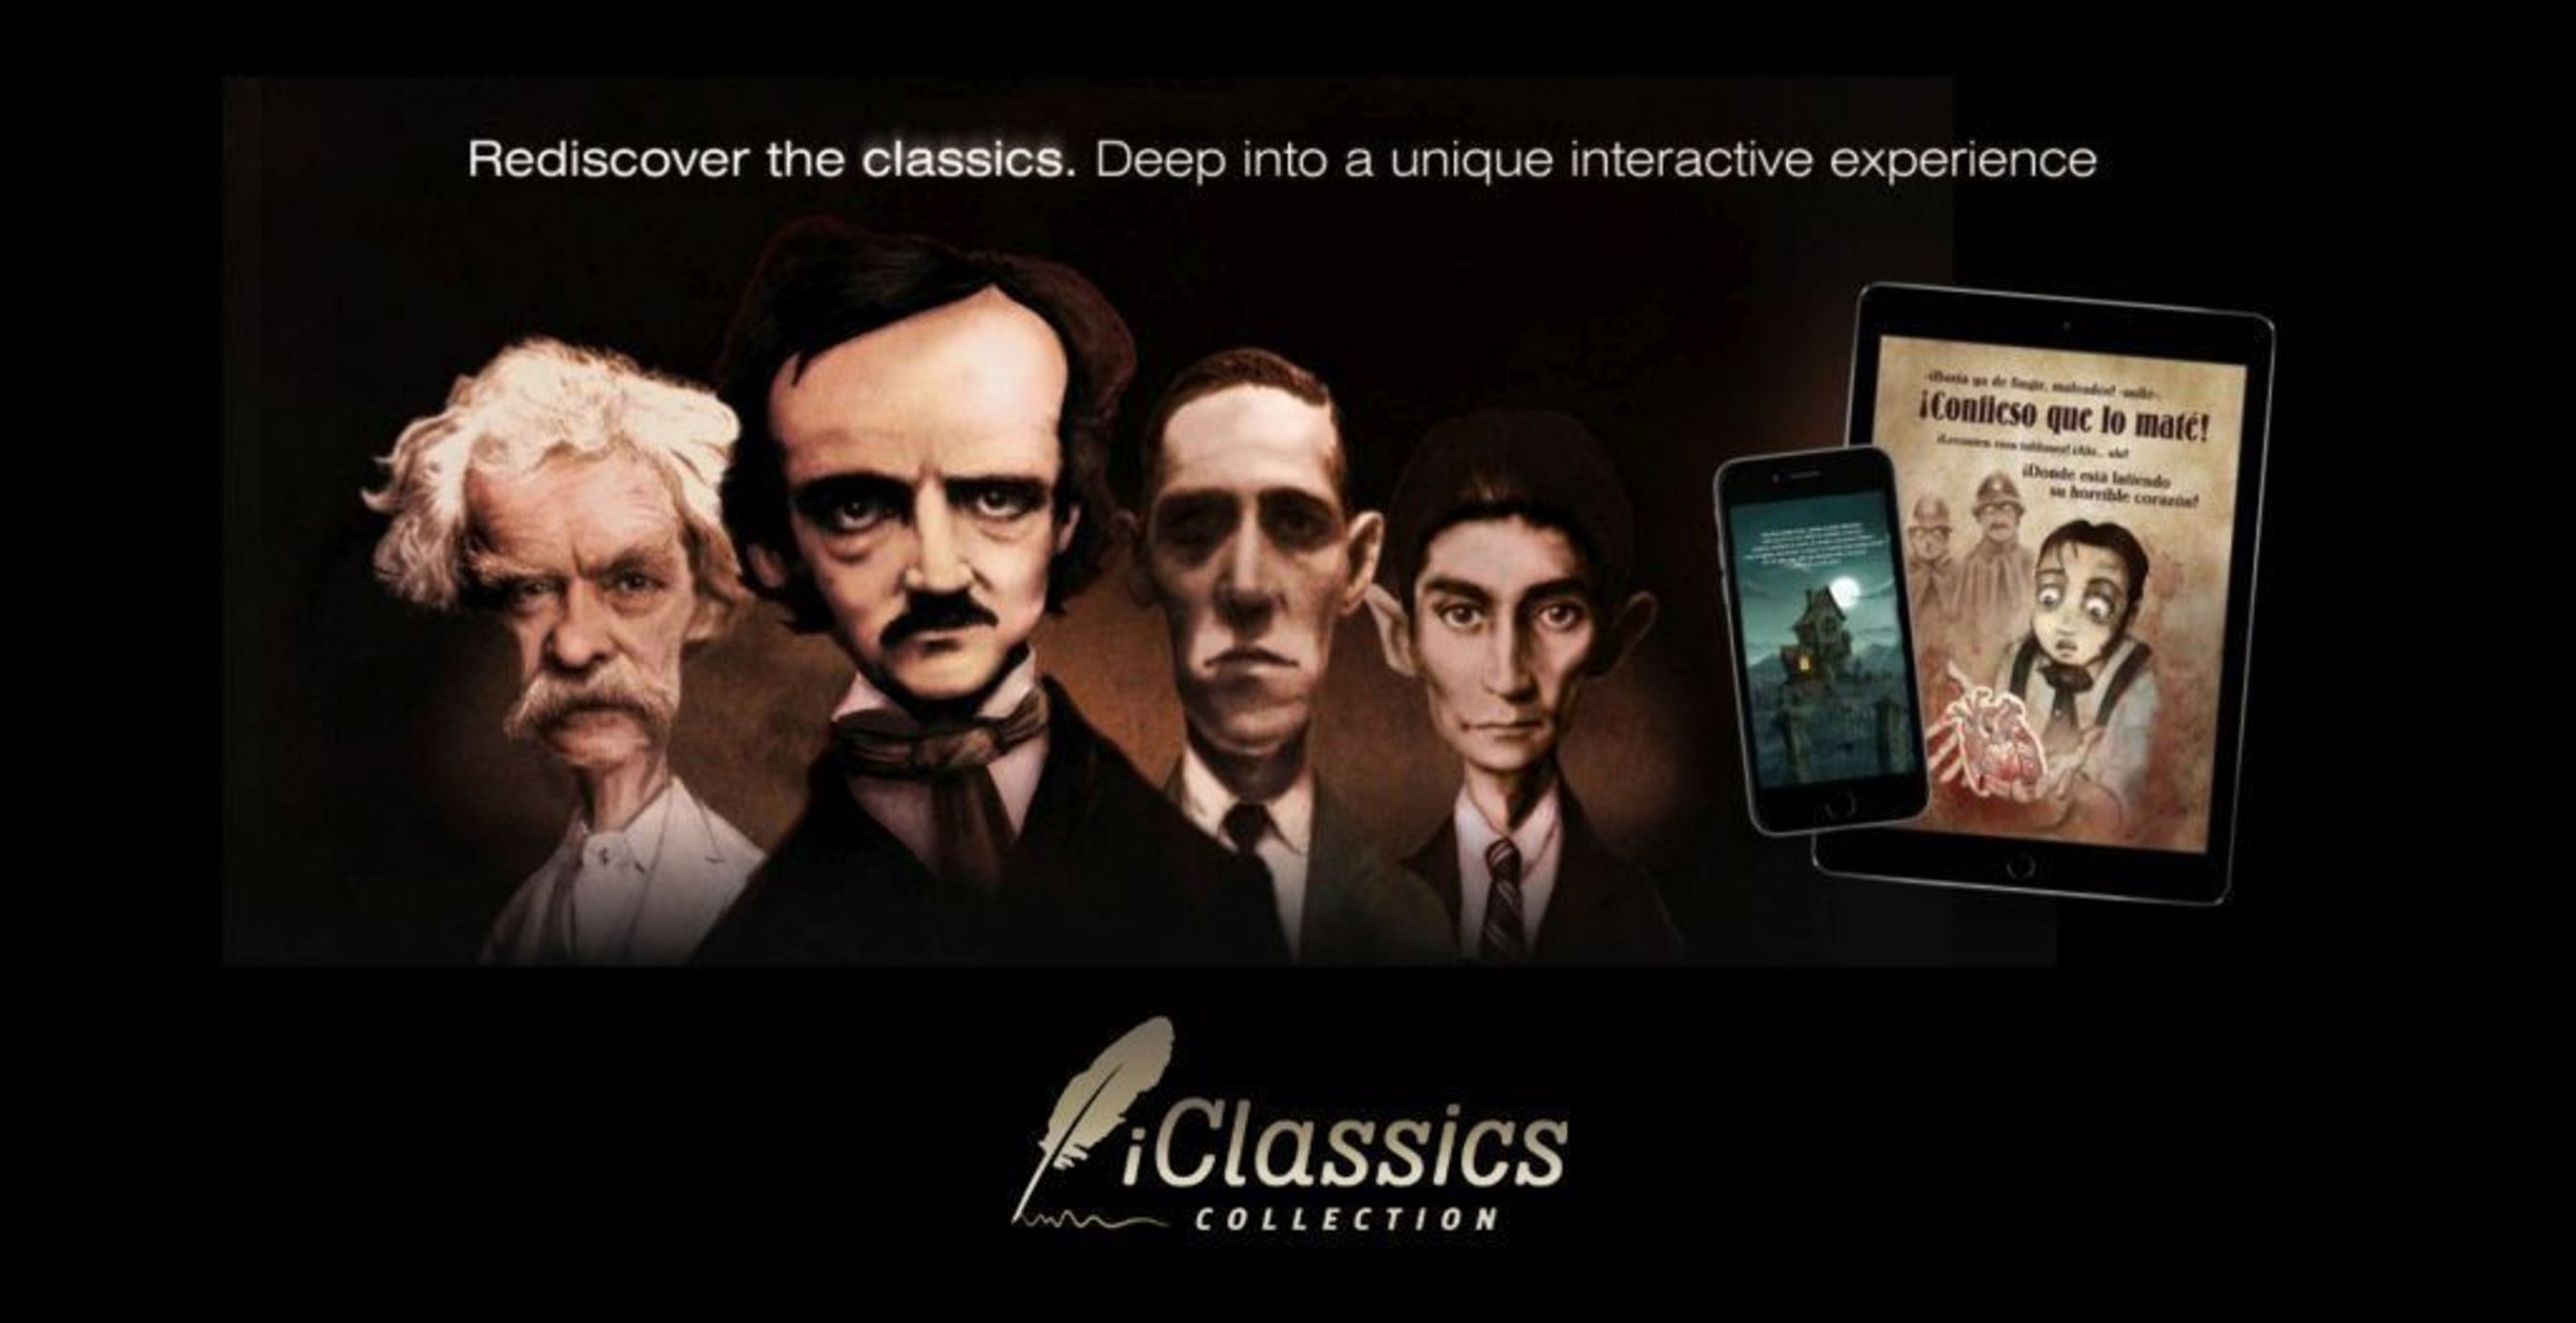 iClassics collection brings classic literature alive for new generations through entertainment and the use of cutting edge technologies. (PRNewsFoto/iClassics Productions SL)